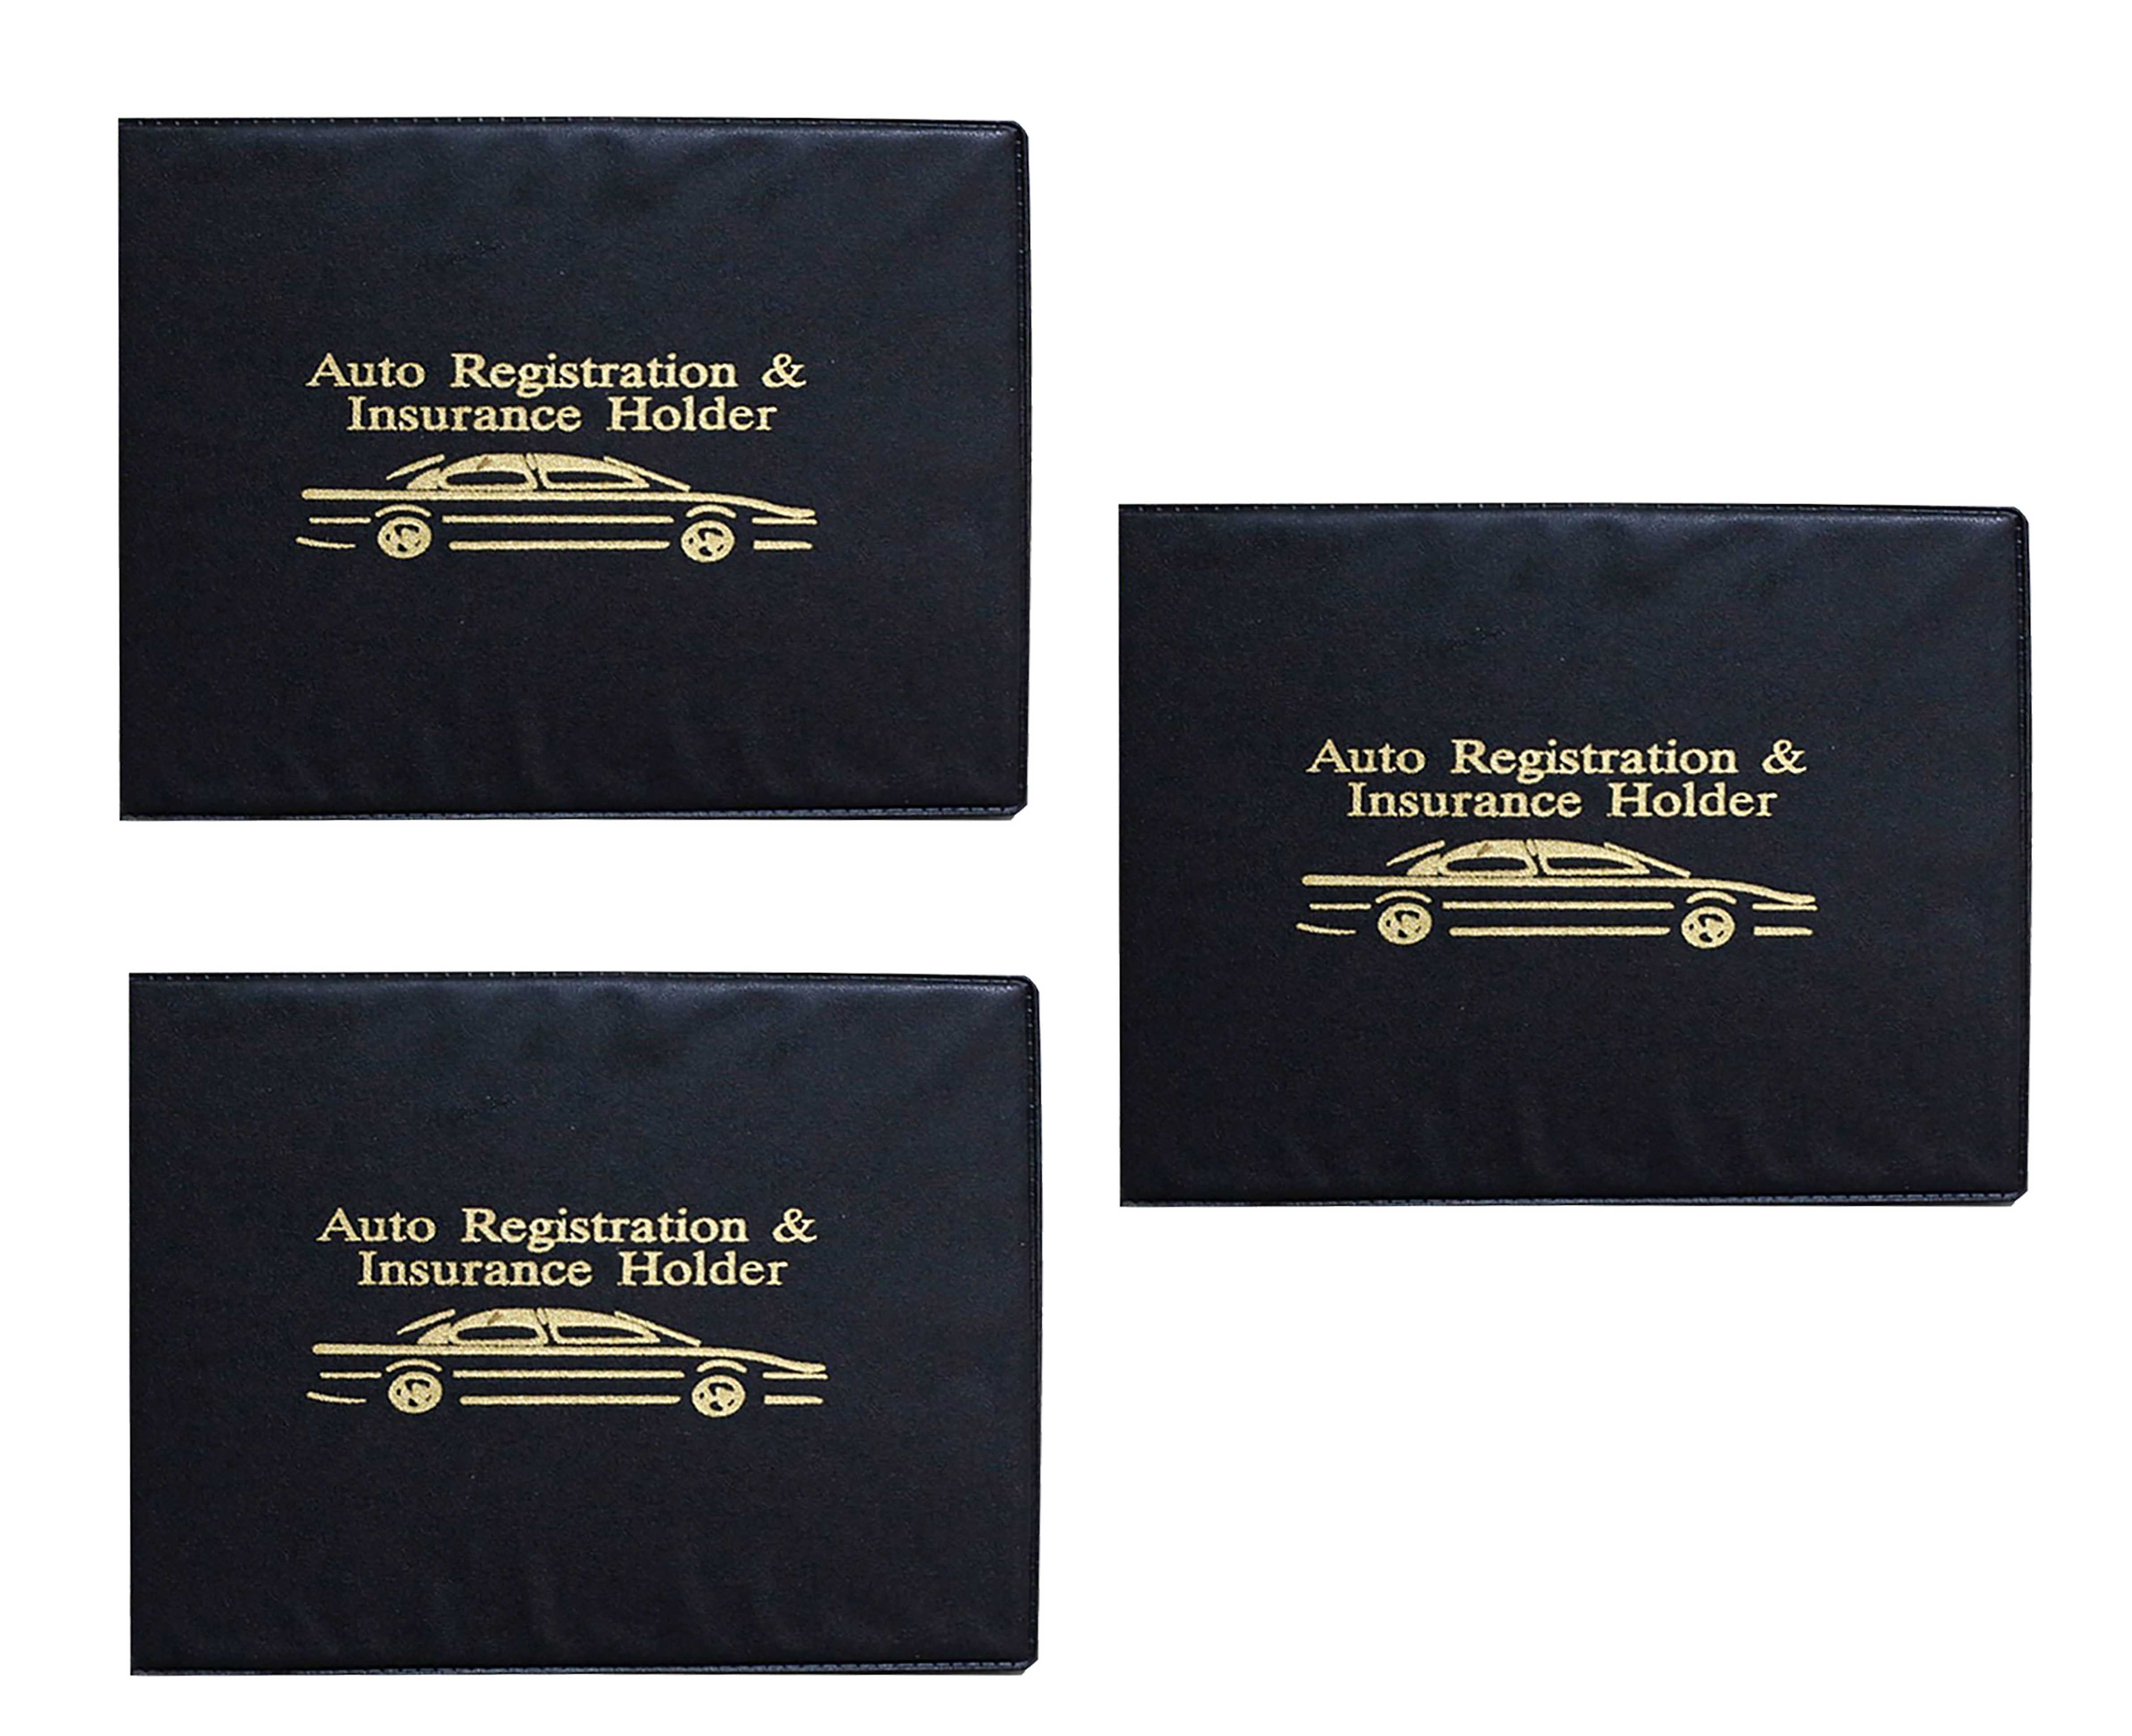 Blue Auto Insurance /& Registration Card Holder Car Essential Paperwork Holder for DMV AAA Vehicle Glove Box Document Organizer Premium PU Leather Wallet Case Contact Information Cards